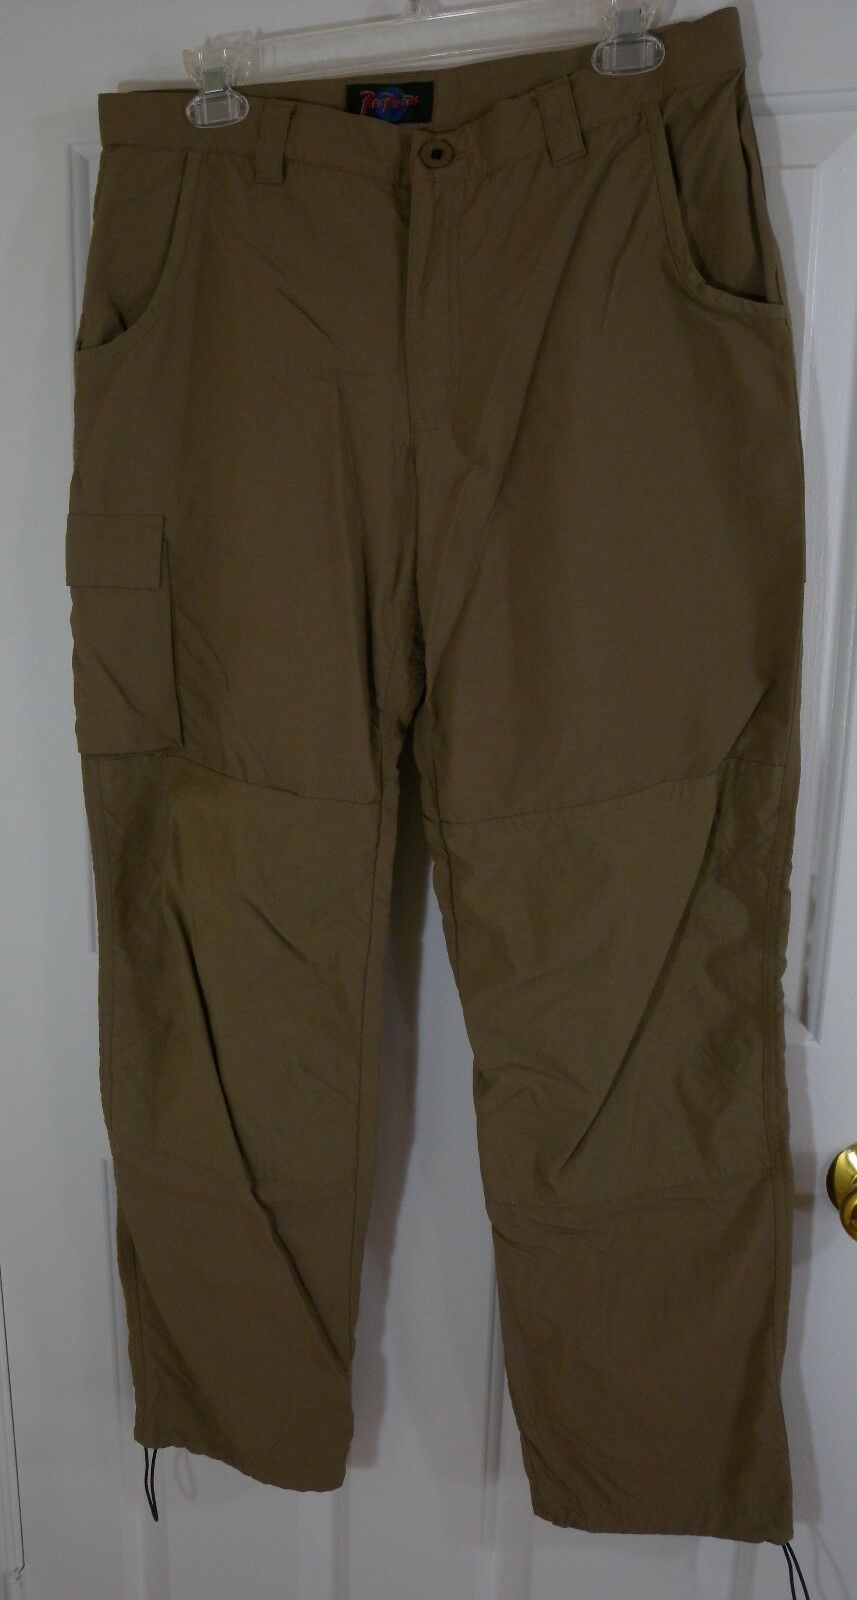 RailRiders Nylon Tan Khaki Brown Travel Hiking Long Pants Womens Medium Cargo